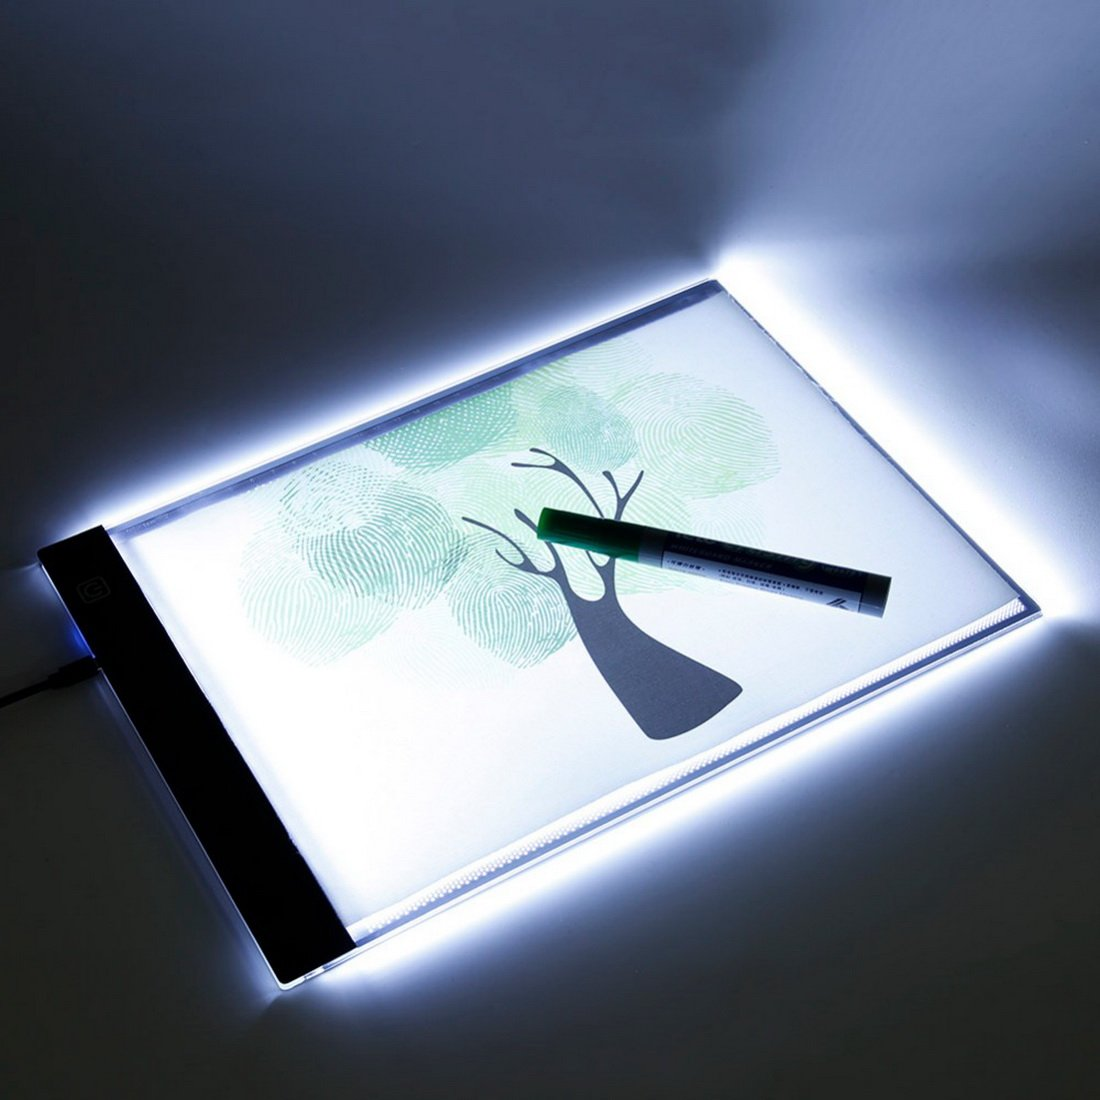 Led Light Box Art Tracer A4 Three-Level Dimming - Writing Painting Light Box Tracing Board - Copy Pads Drawing Tablet Artcraft Lighted Porta Trace Table (Horizontal) by Mega Shop